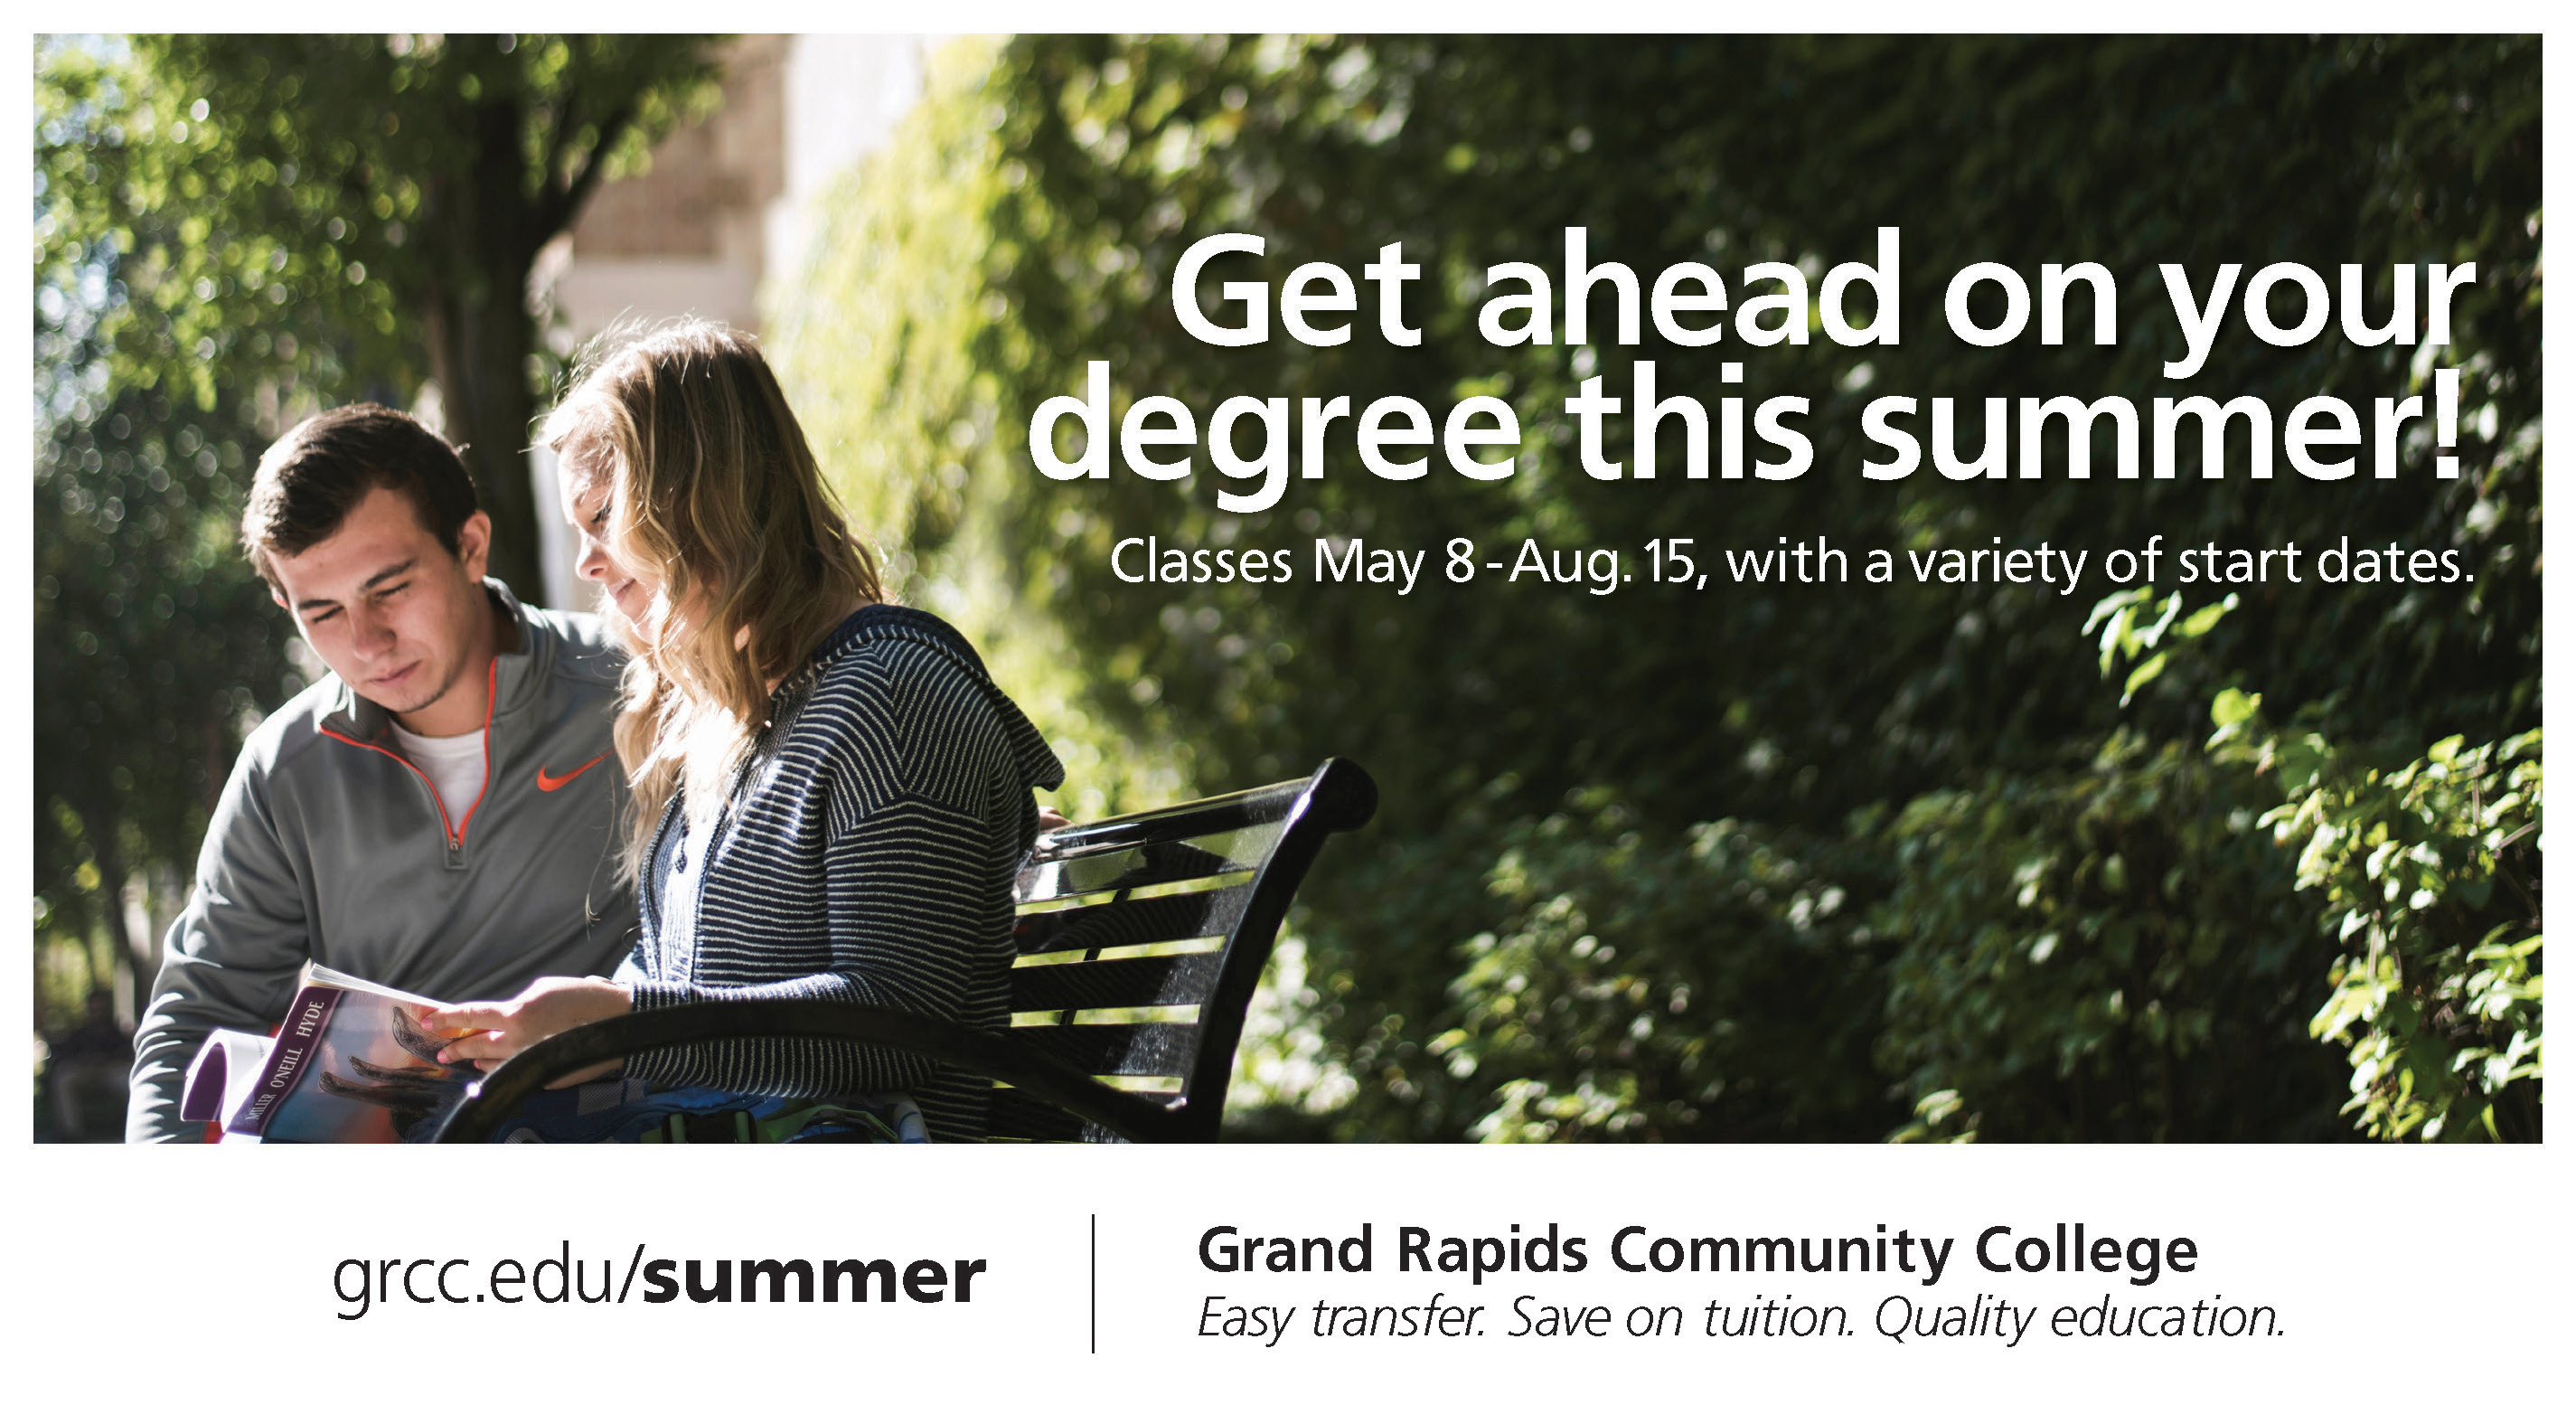 72581 Summer Guest Ad_Page_2